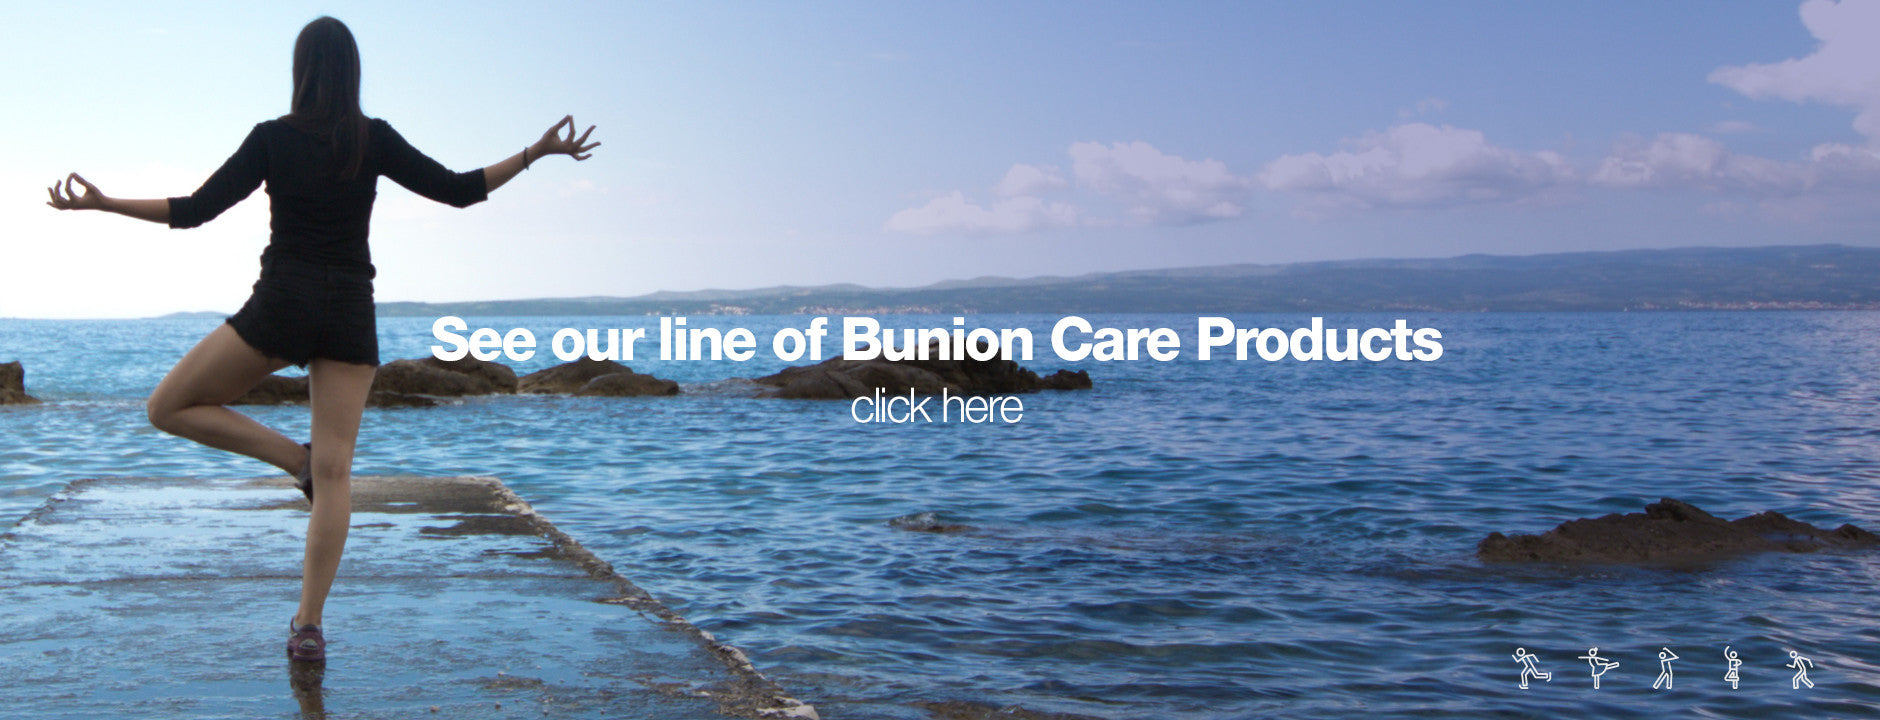 Bunion Care Products